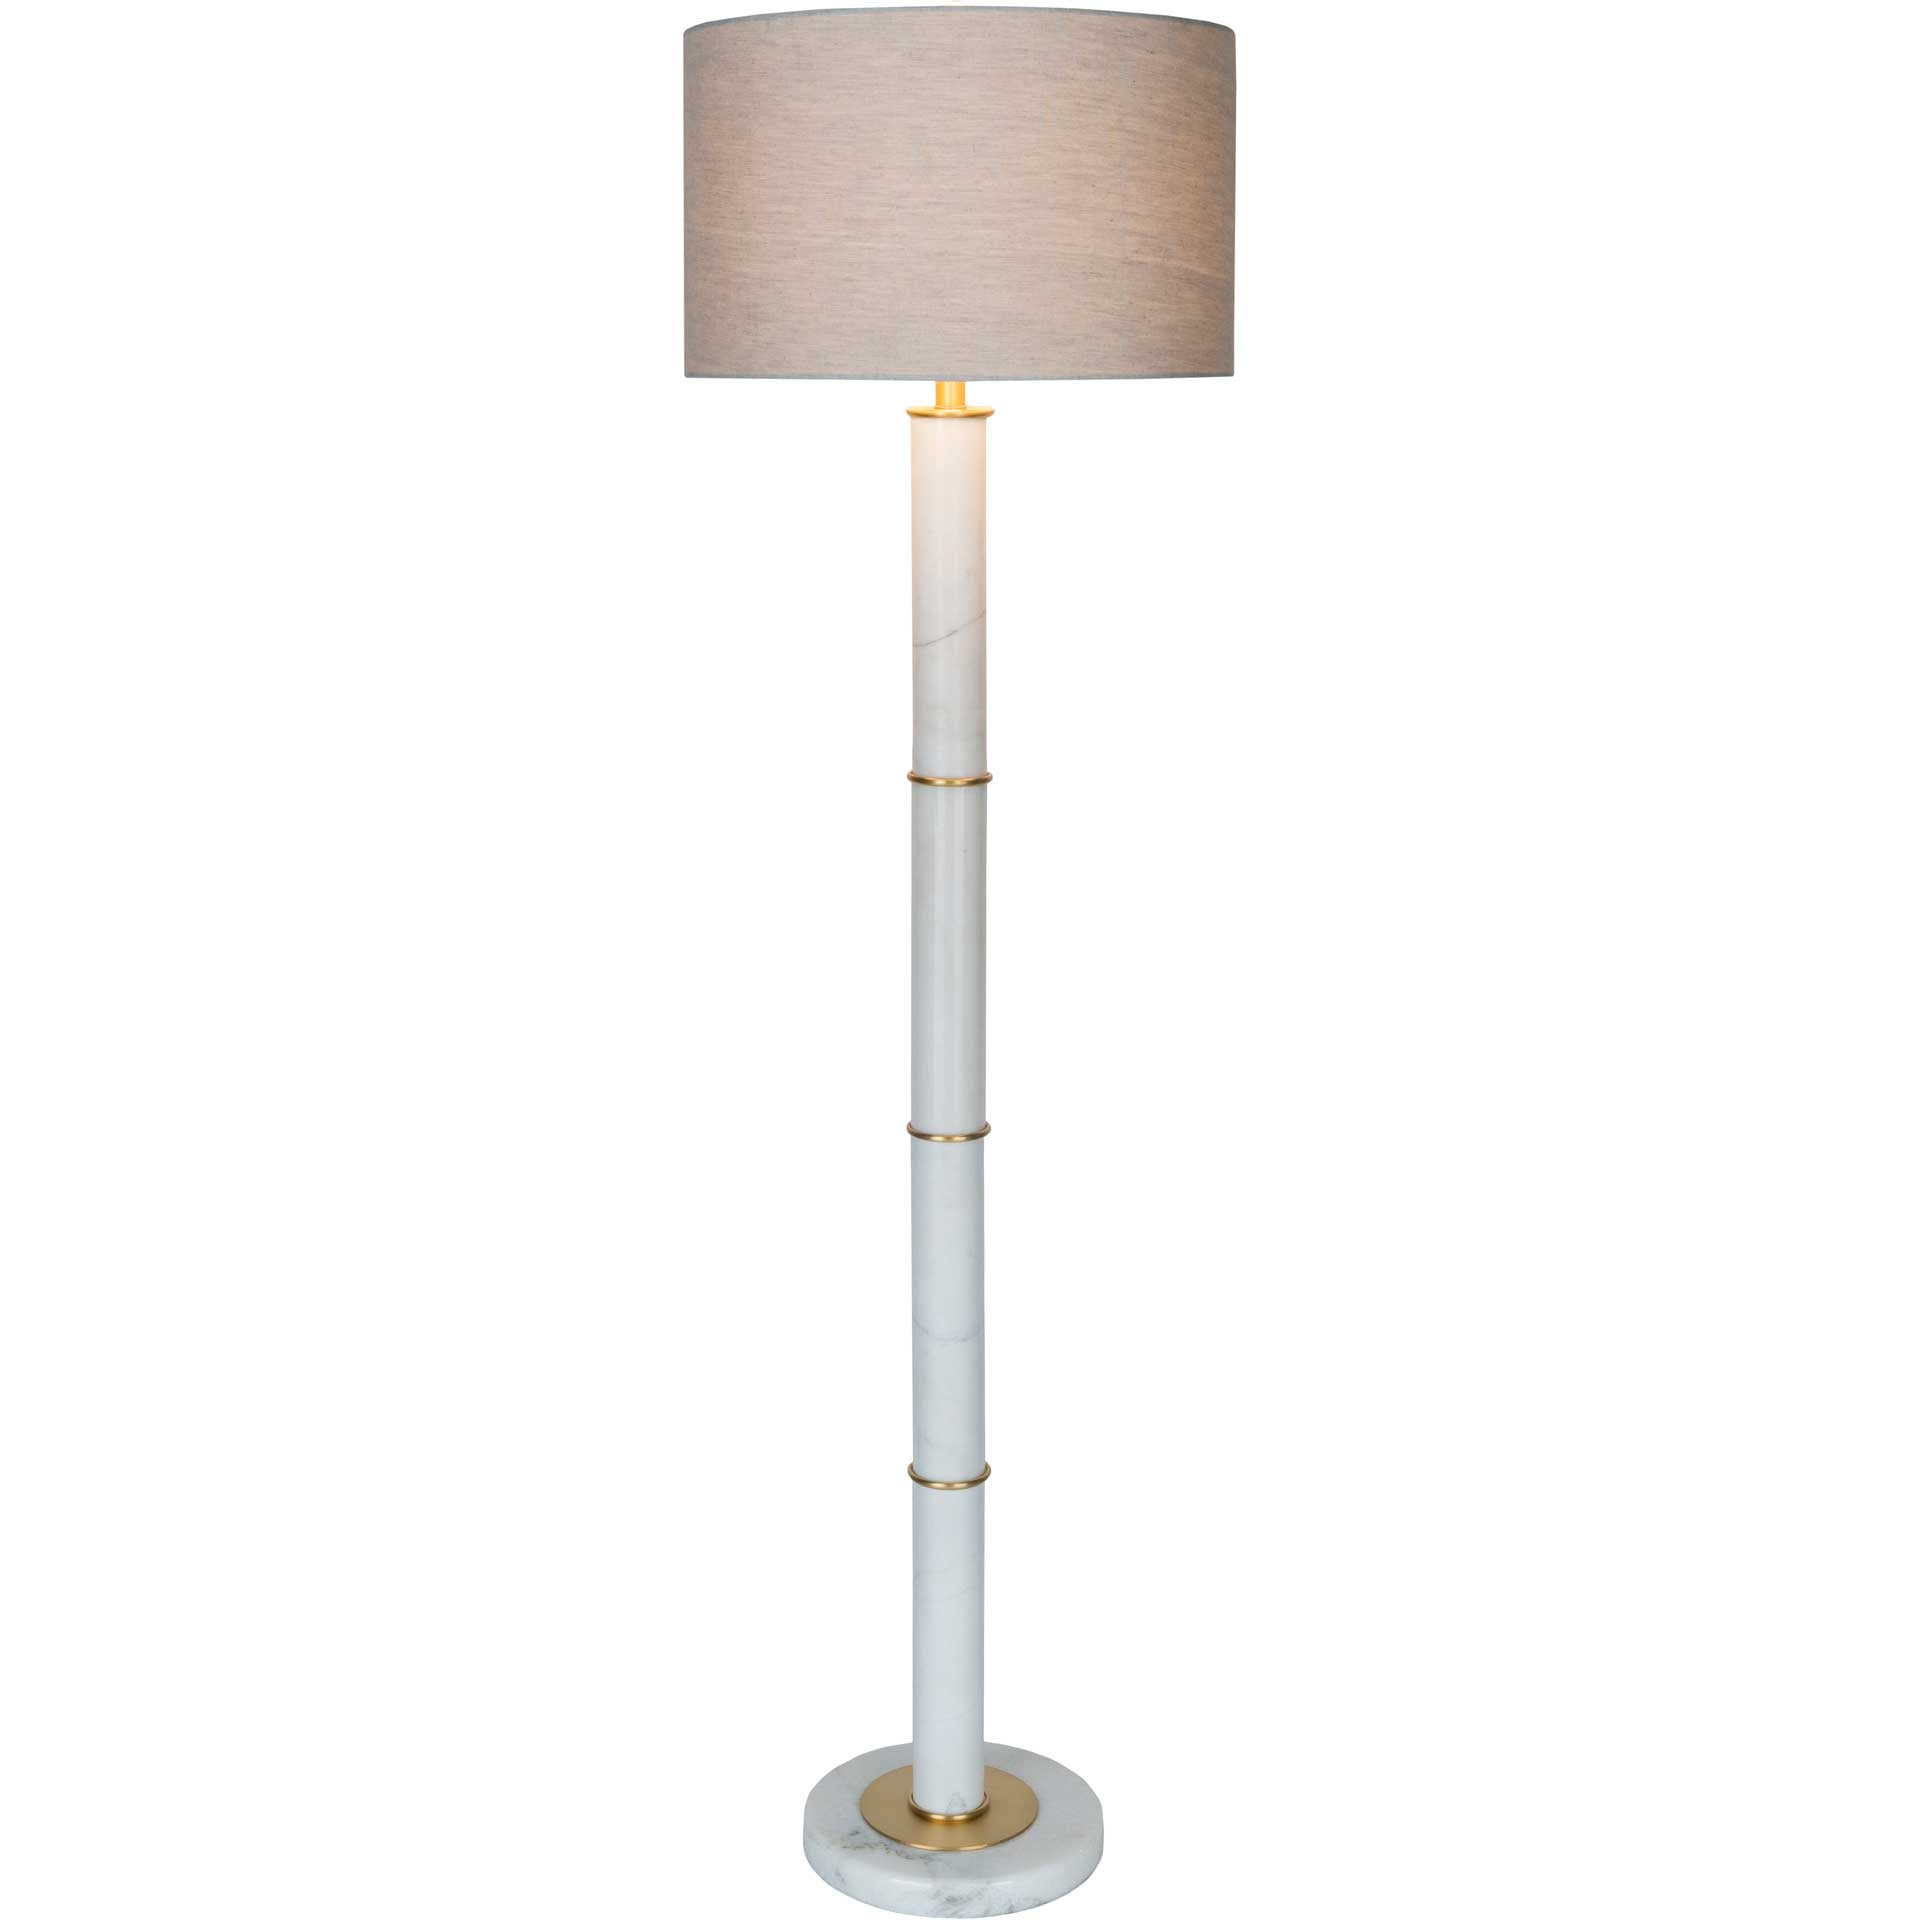 Brentley Floor Lamp Medium Gray/White/Beige